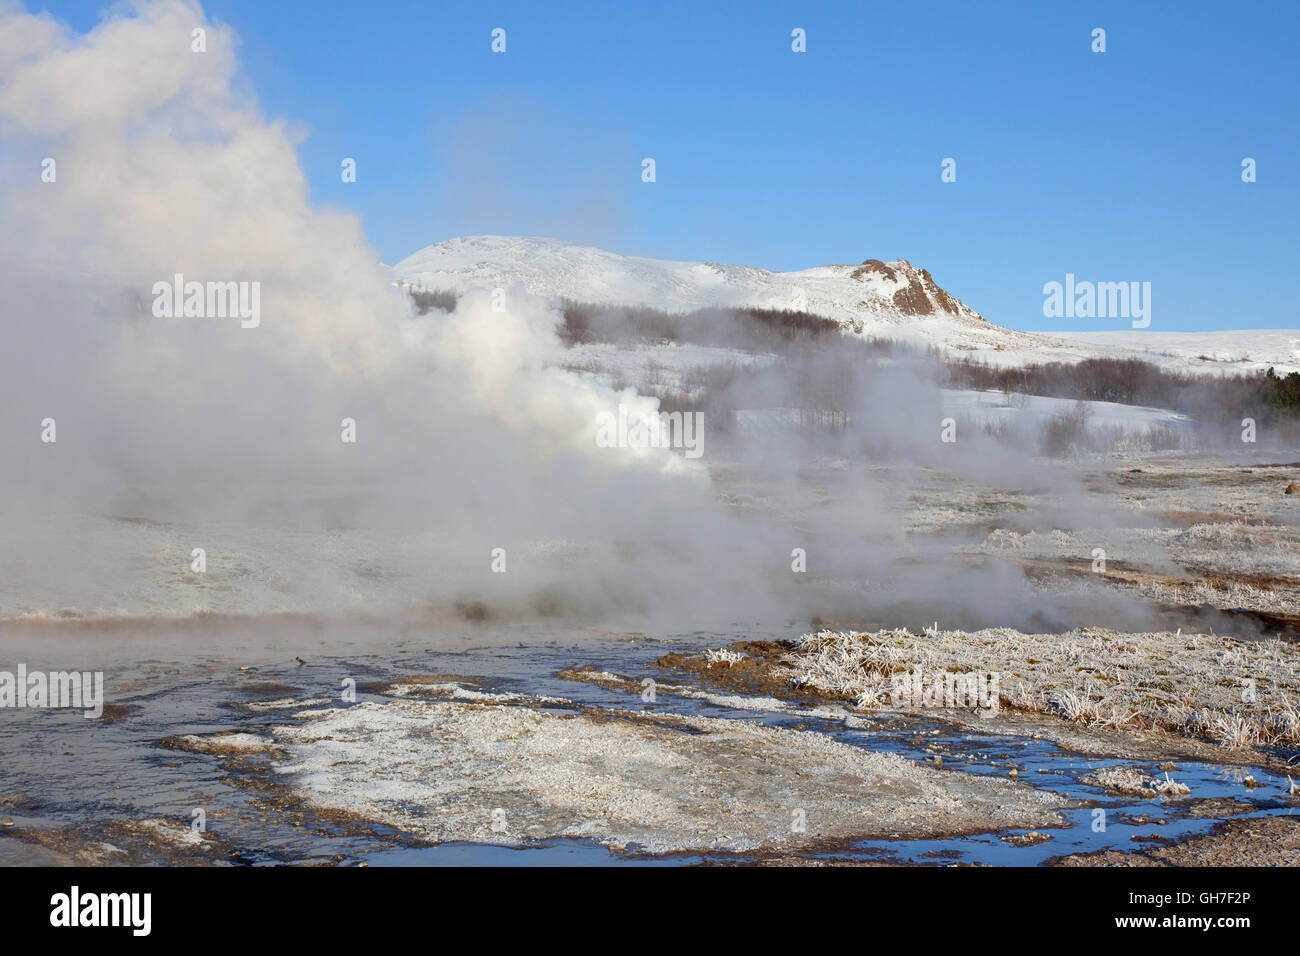 Geothermal area of Geysir in the Haukadalur valley, Sudurland, Iceland Stock Photo